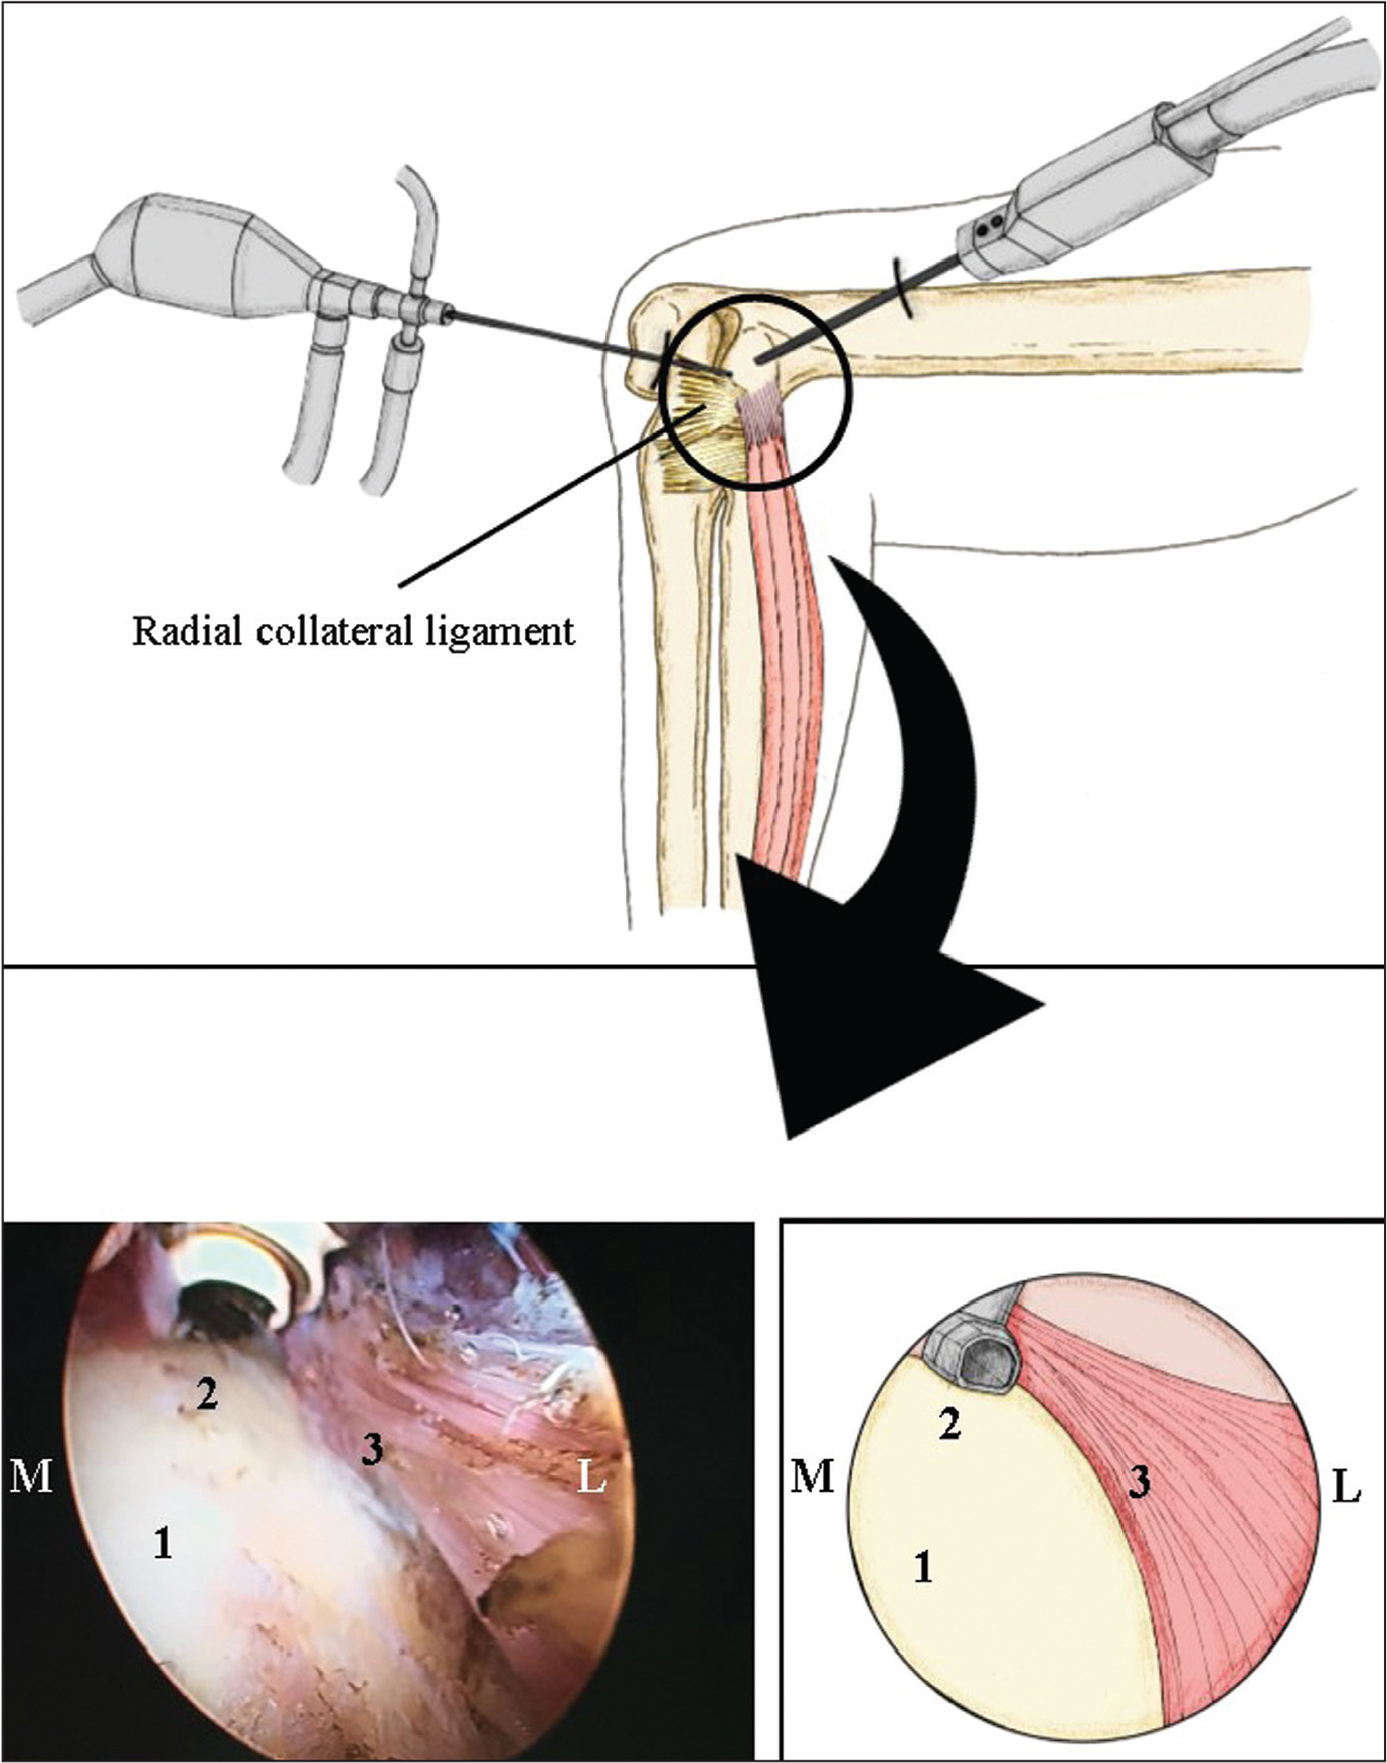 Disinsertion of the extensor carpi radialis brevis tendon in a right elbow in lateral decubitus using a radiofrequency probe. General view (top). Arthroscopic view (bottom left) and its schema (bottom right). Abbreviations: L, lateral edge; M, medial edge; 1, posterior aspect of the lateral epicondyle; 2, disinsertion of the extensor carpi radialis brevis using proximal/medial to lateral movement of the radiofrequency probe; 3, extensor carpi radialis brevis.